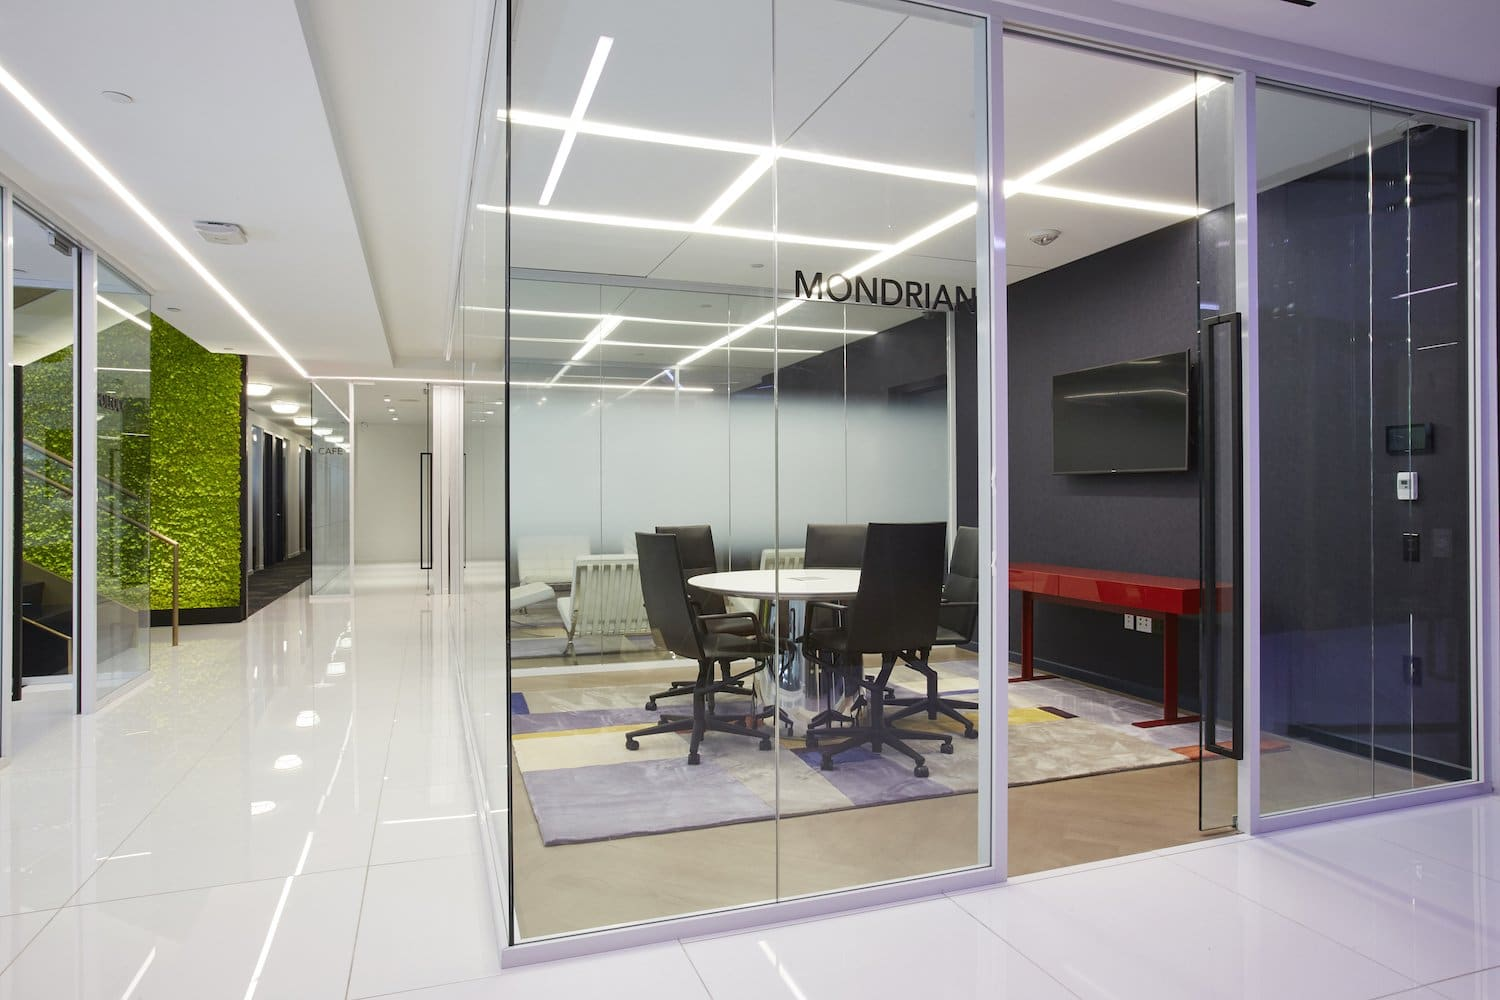 Mondrian meeting room with glass walls